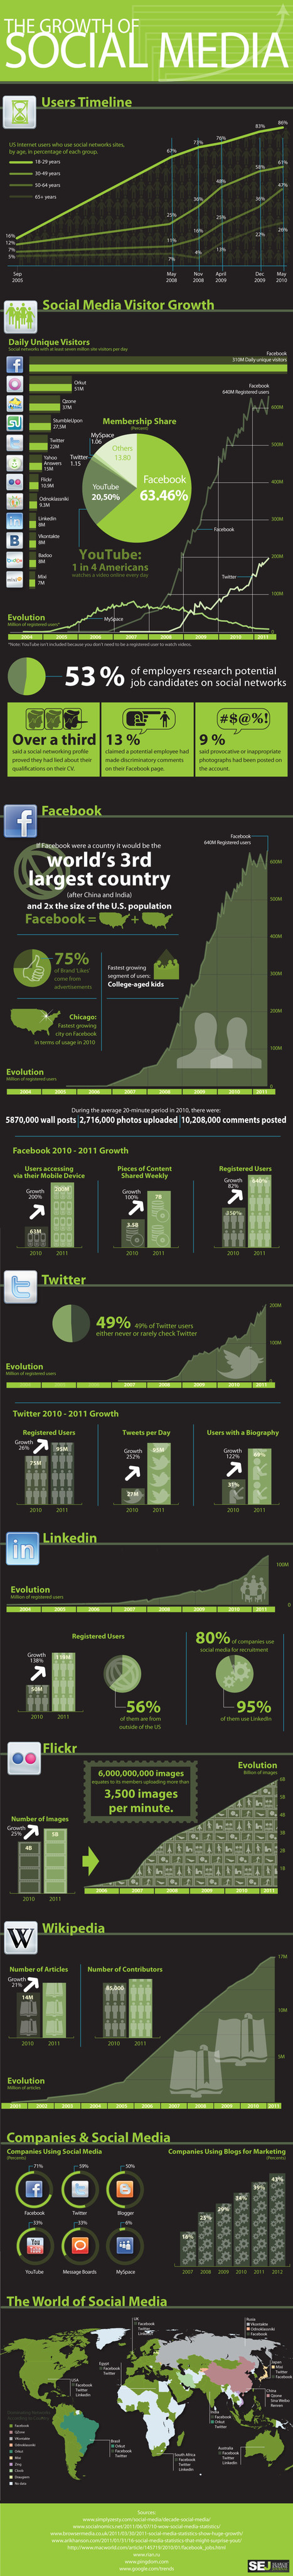 20 Stunning Social Media Statistics Plus Infographic | Social Media for Small Business | Scoop.it